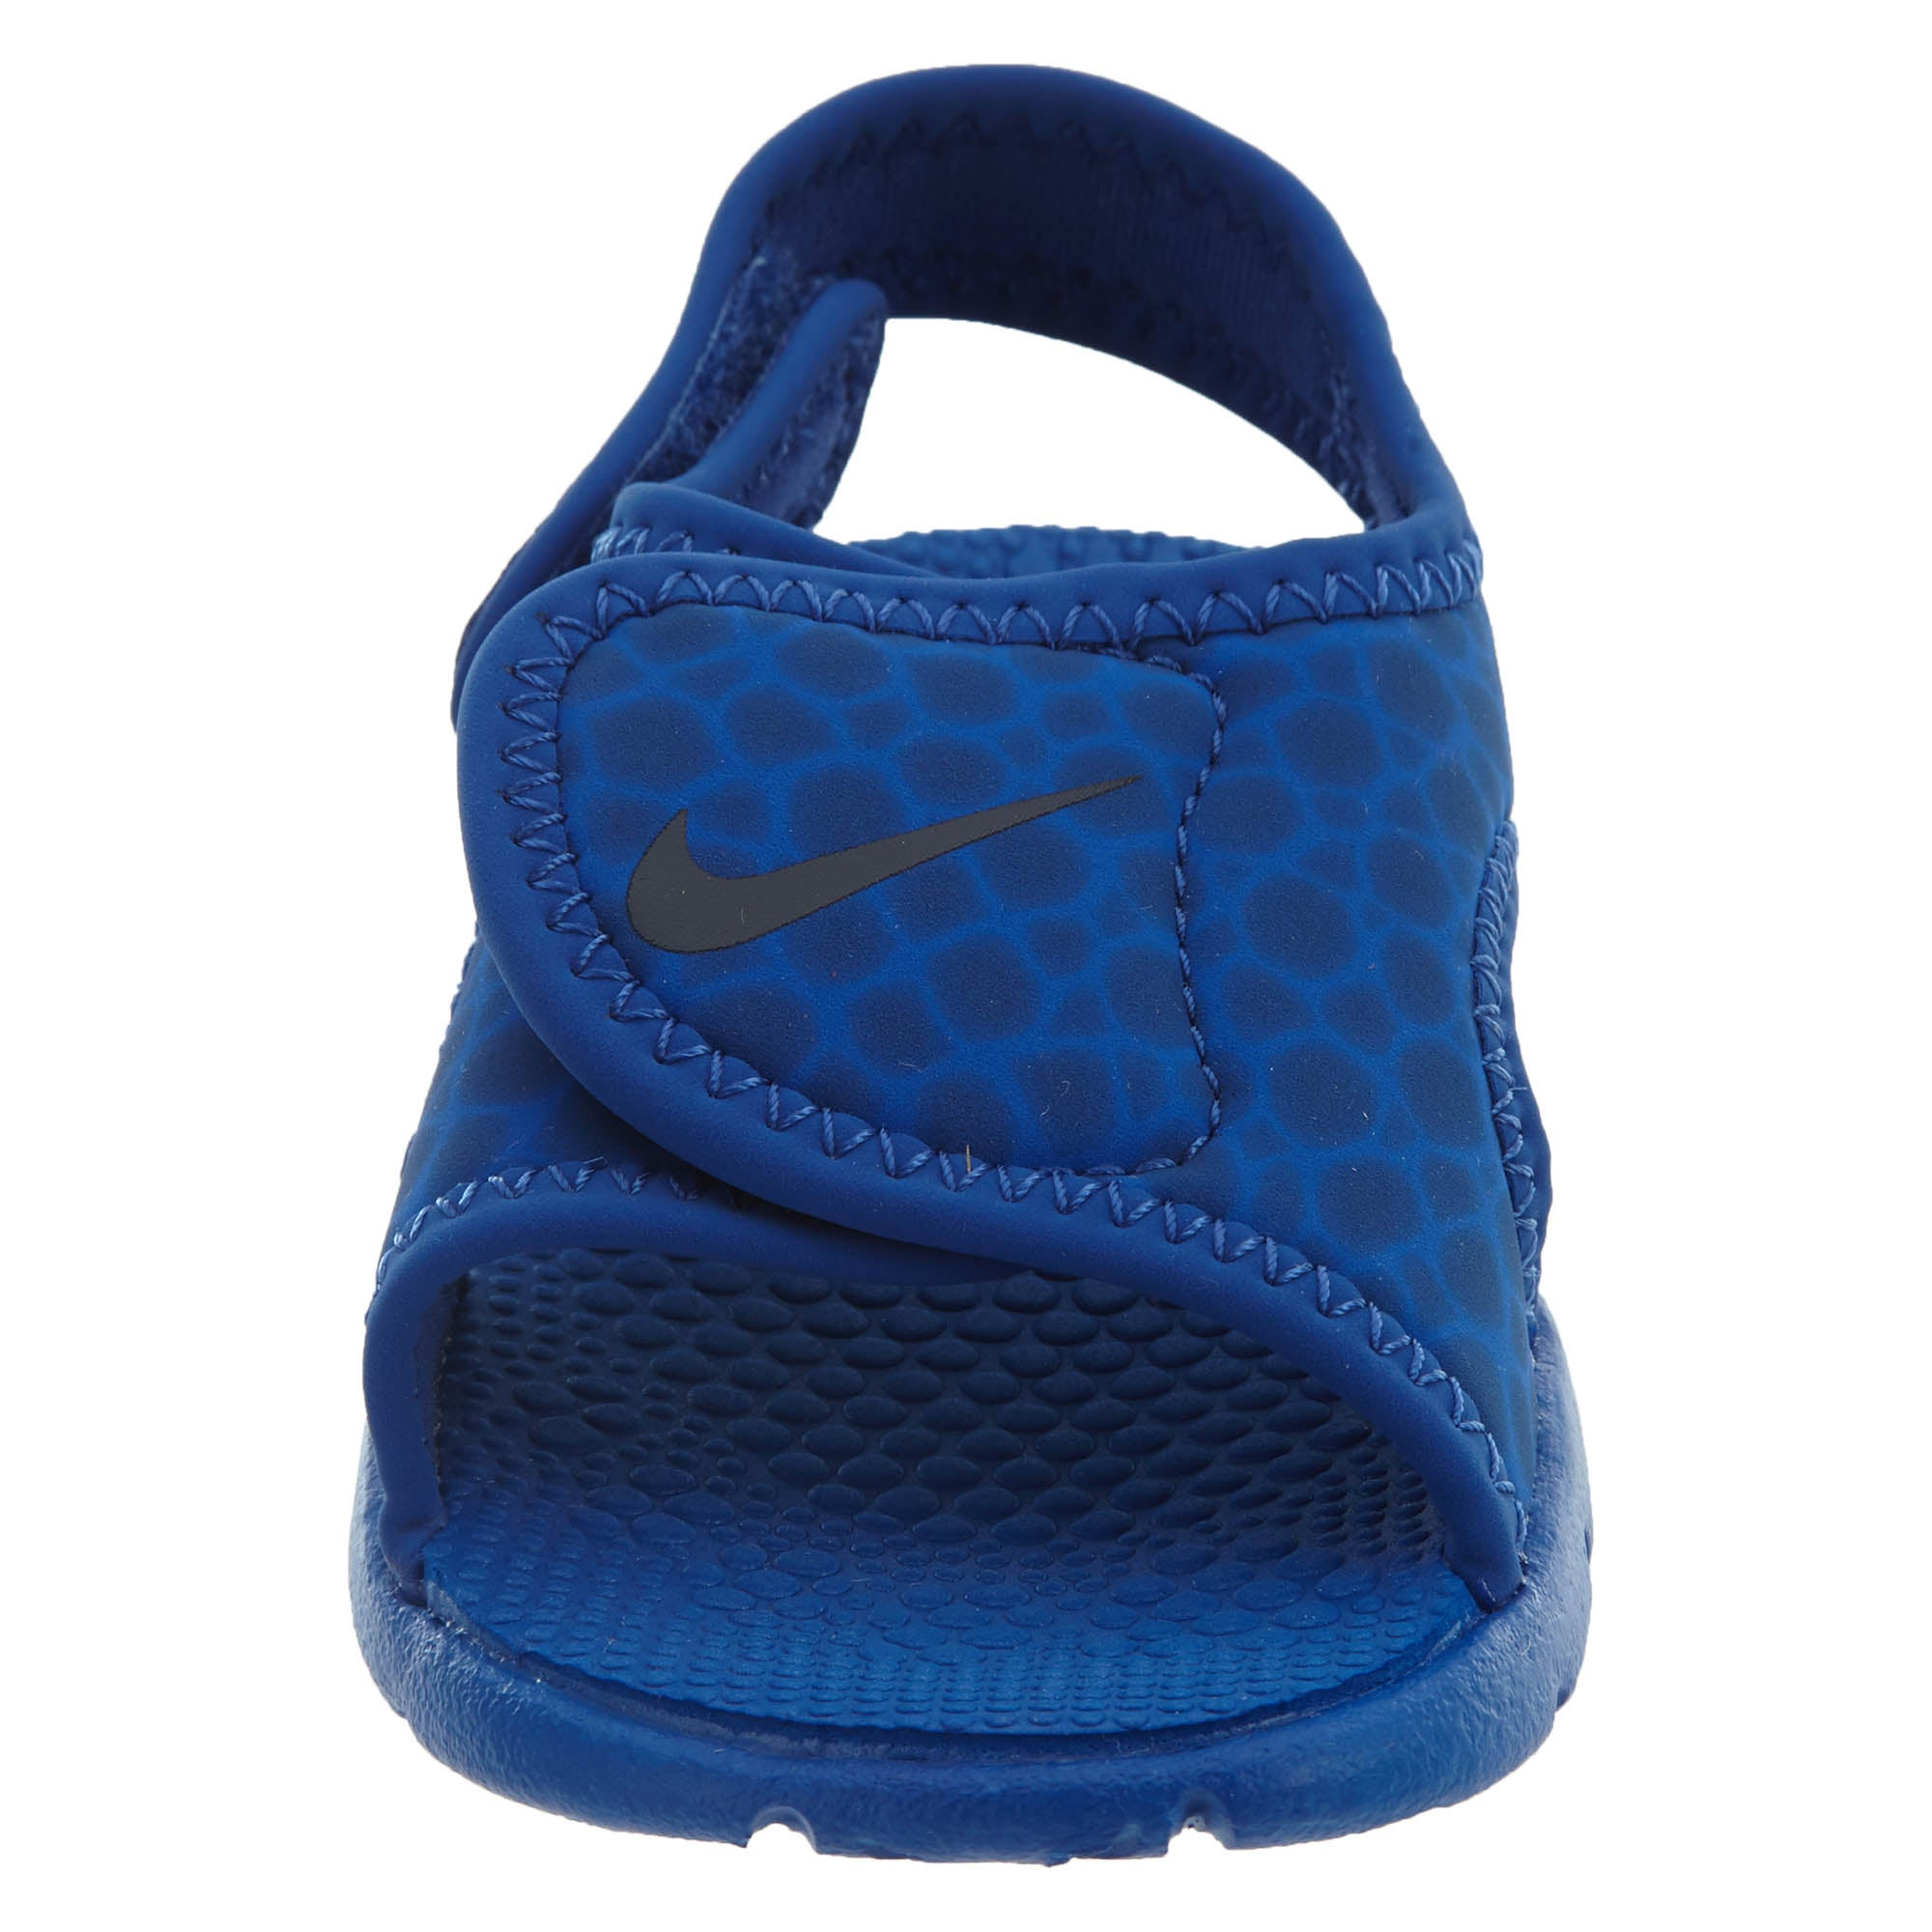 5880214a0a Nike Sunray Adjust 4 Toddlers Style : 386519